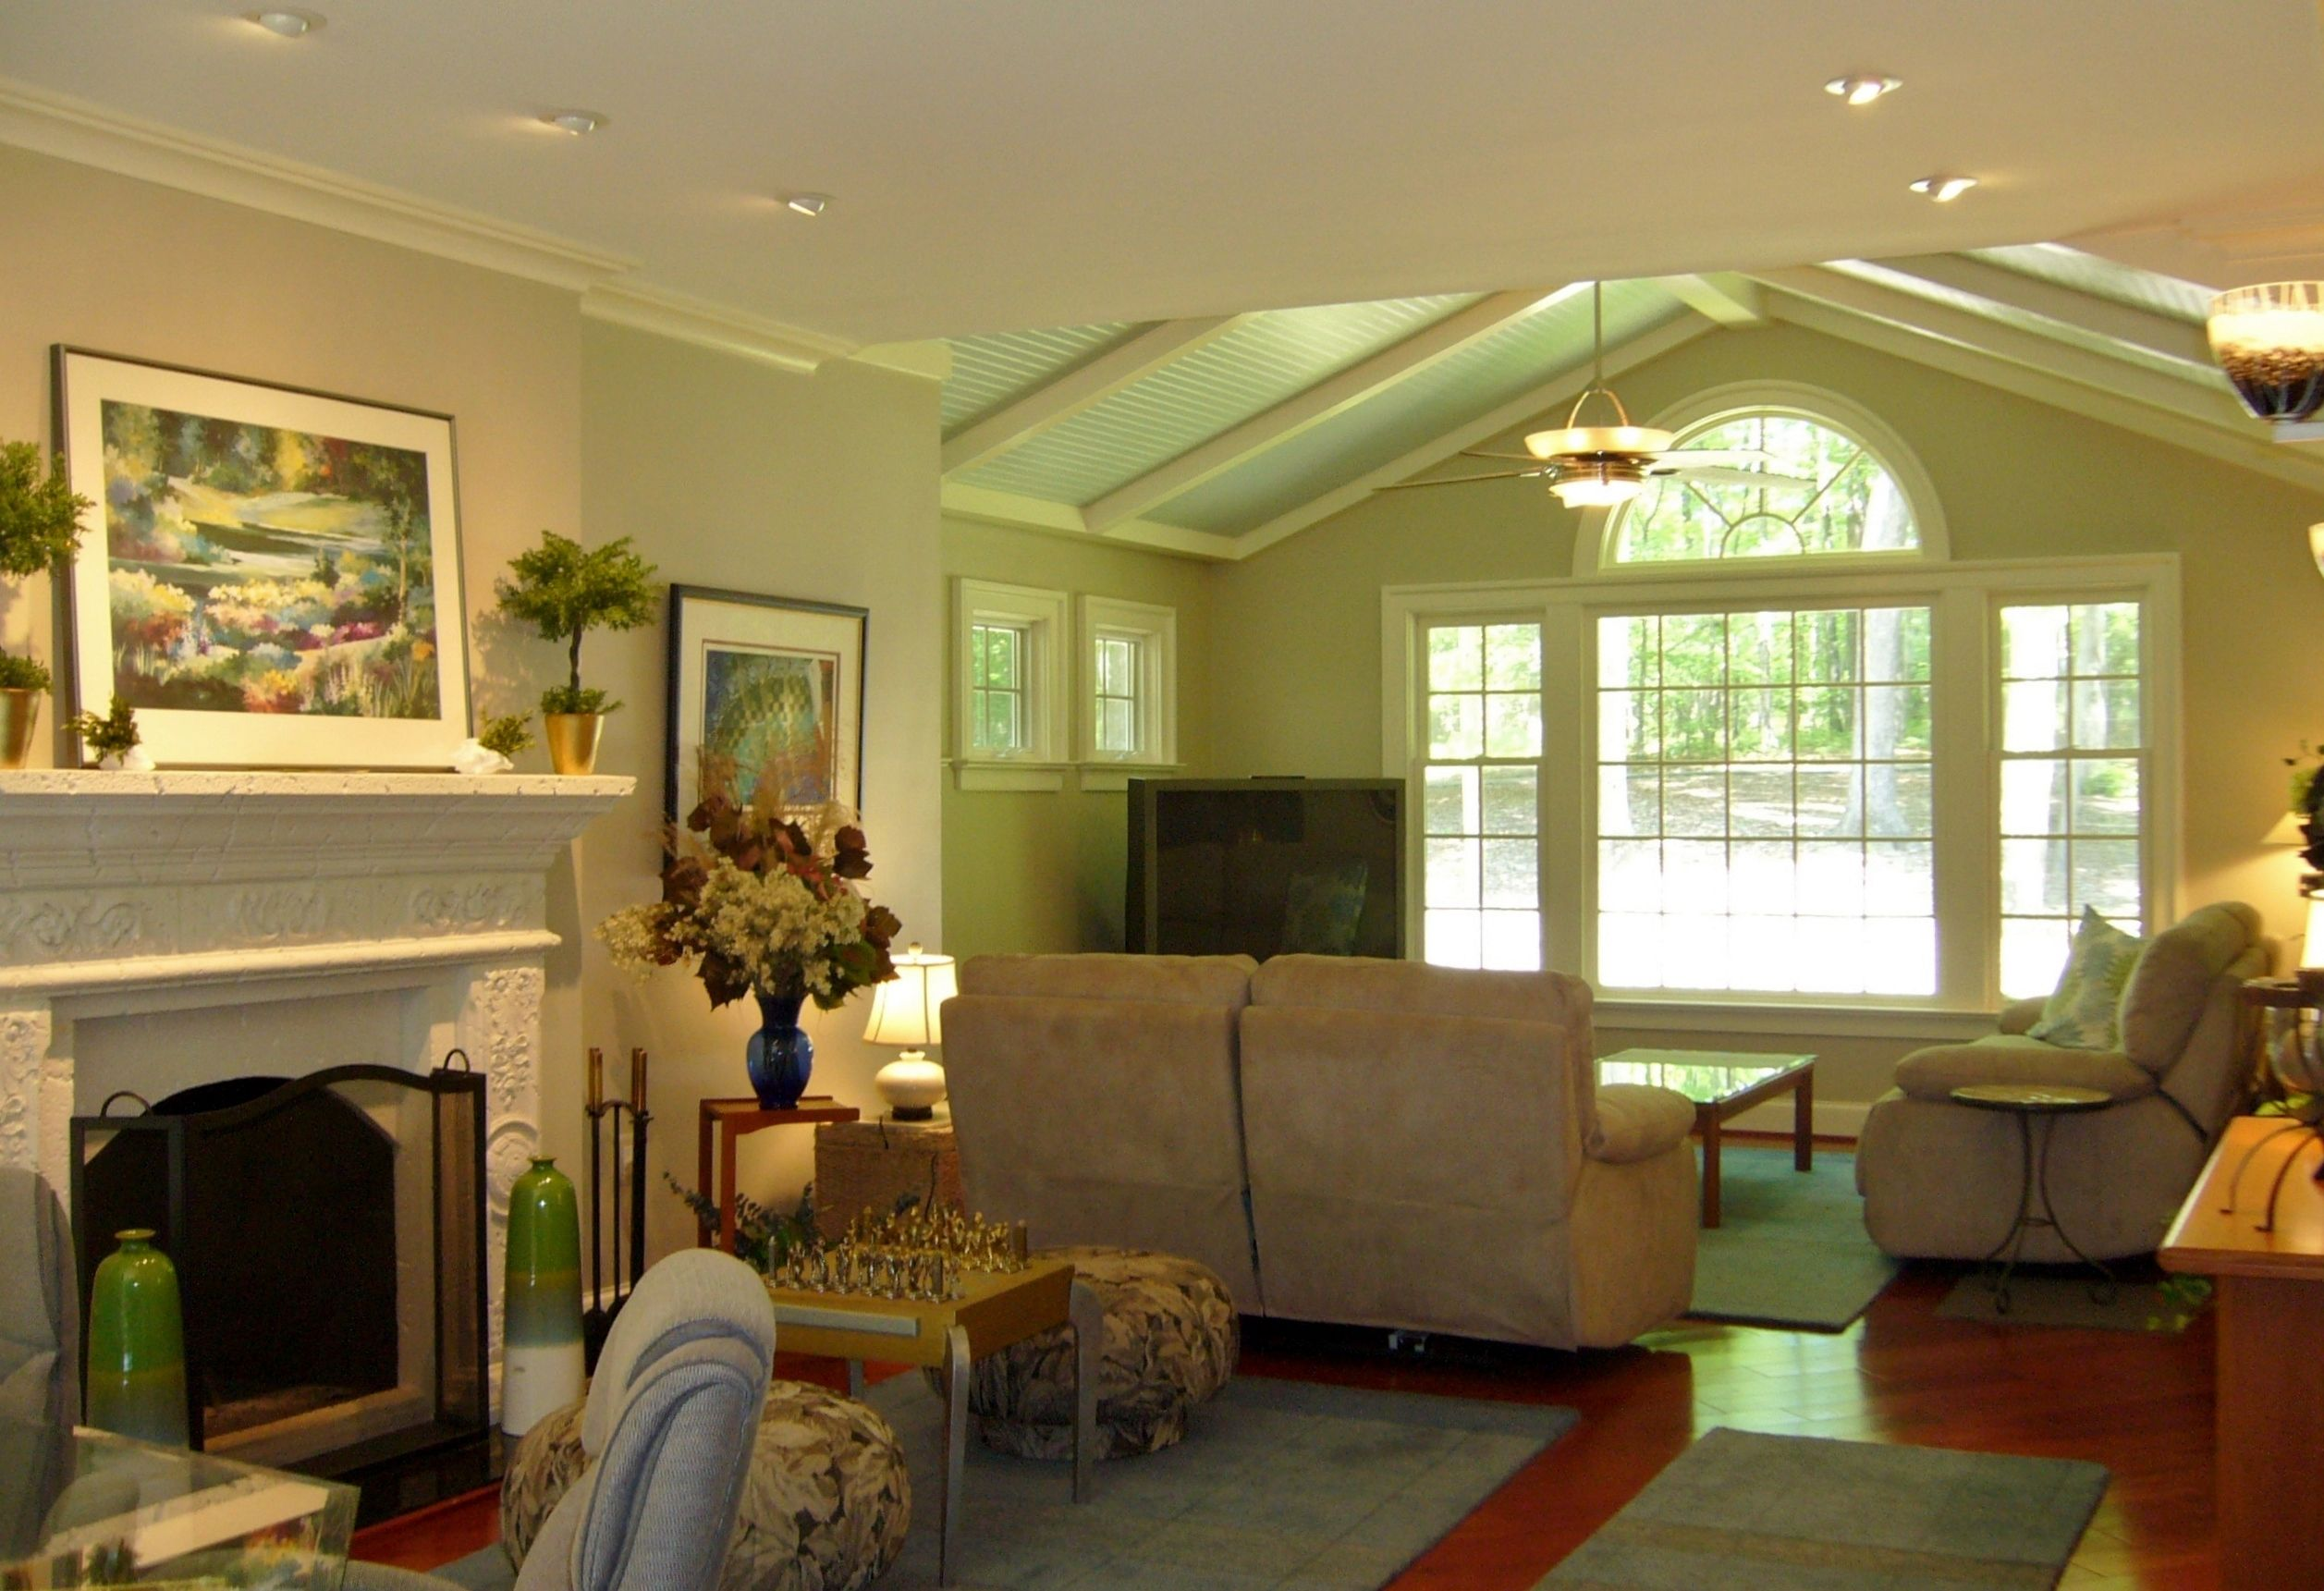 Great room addition with cathedral ceiling new windows for Family room addition pictures